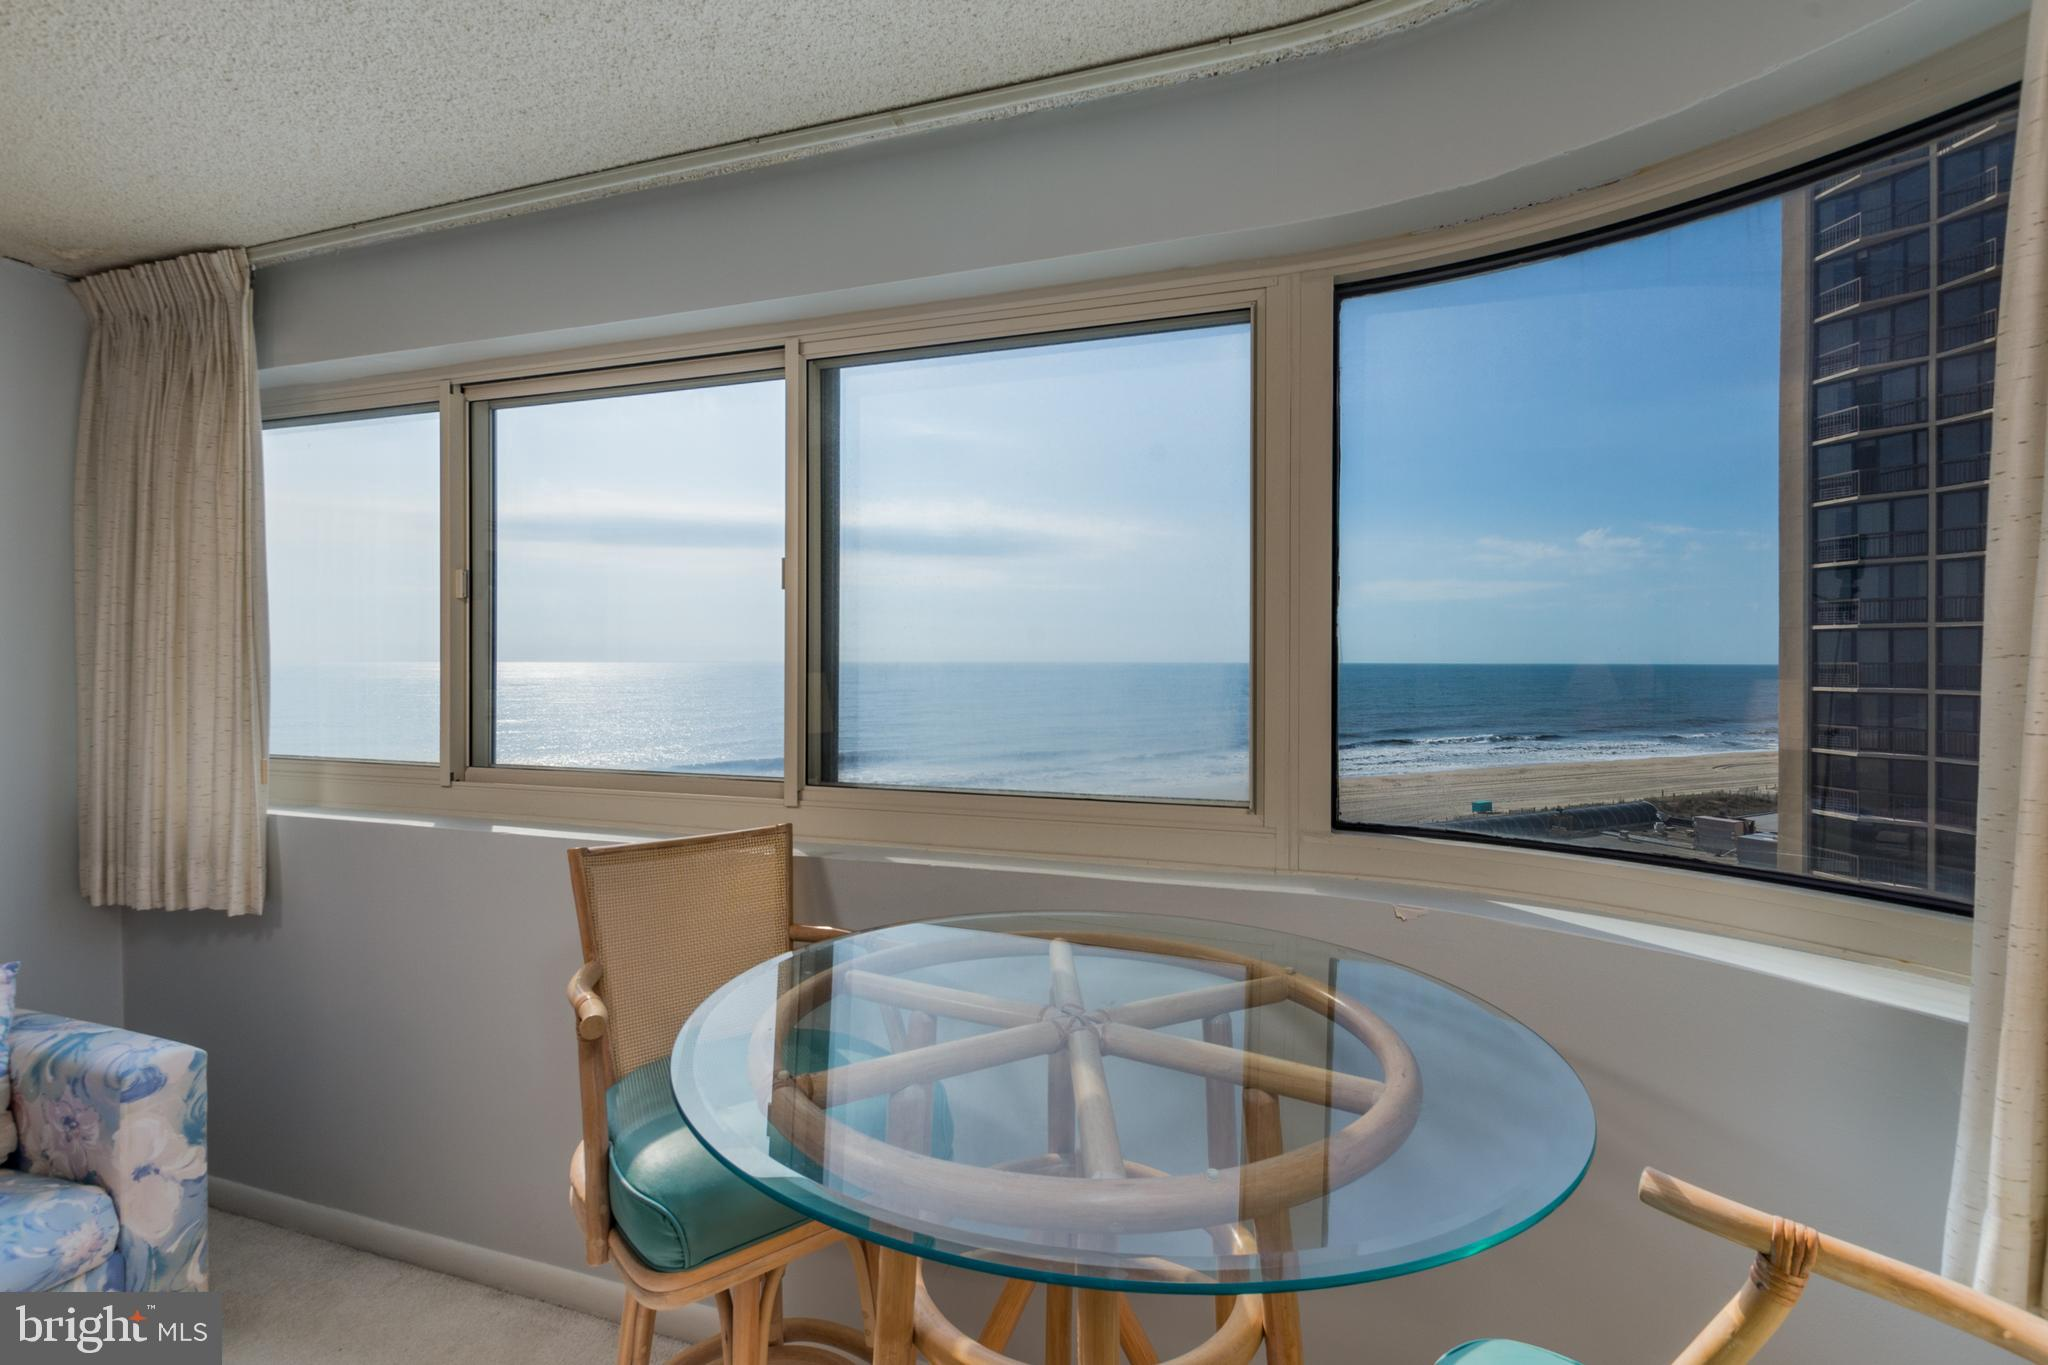 Oceanfront at this price? One of LOWEST Priced Oceanfront condos in OC - Great Deal...almost $25,000 less than last efficiency sold in Atlantis, and a higher floor, so you get the better view, too! Oceanfront condo, oceanside pool, sought-after building, beach sights and sounds right from your living room...what are you waiting for? Original owners have made many memories  and now time for someone else to make those lasting beach memories in this oceanfront efficiency! Never been a rental, but would make a great one. Or live in as primary residence or a perfect beach getaway. Atlantis offers wonderful pool, year-round security, elevators, onsite managers, parking and great location. Ask for a private showing.